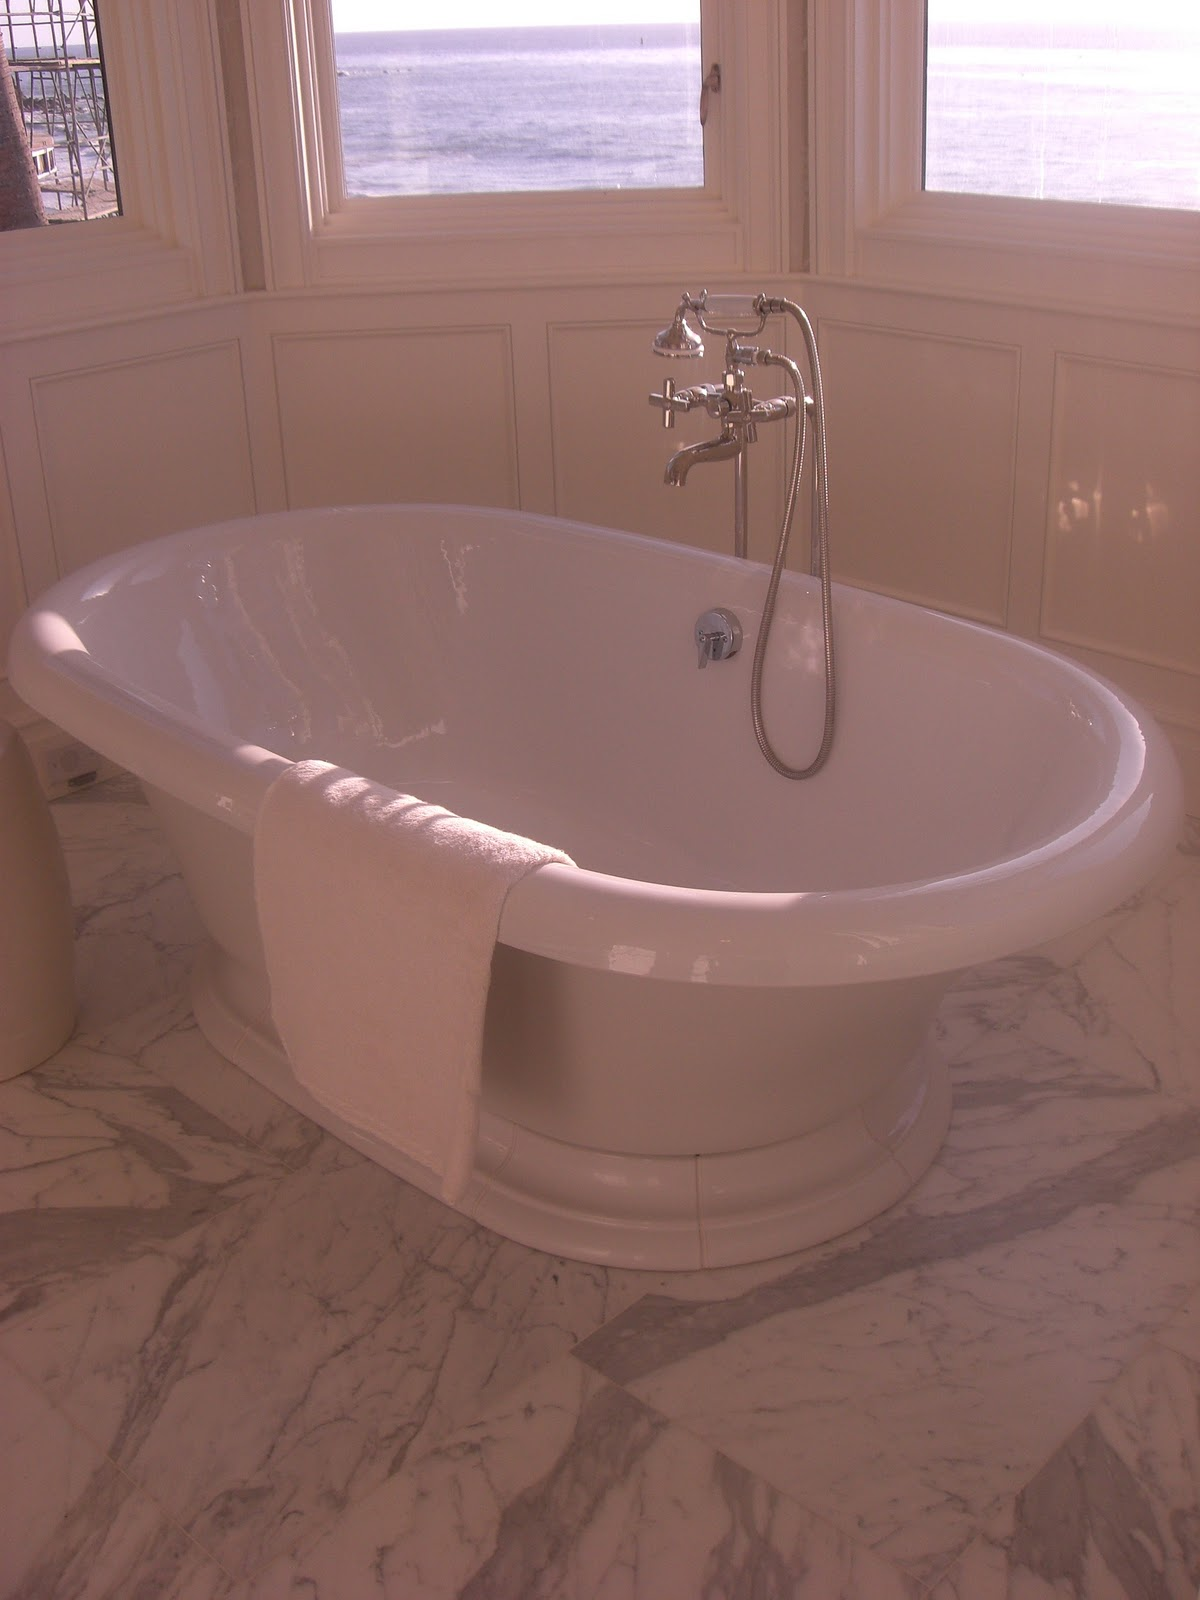 Freestanding tub with tub filler in master bathminus the pacific